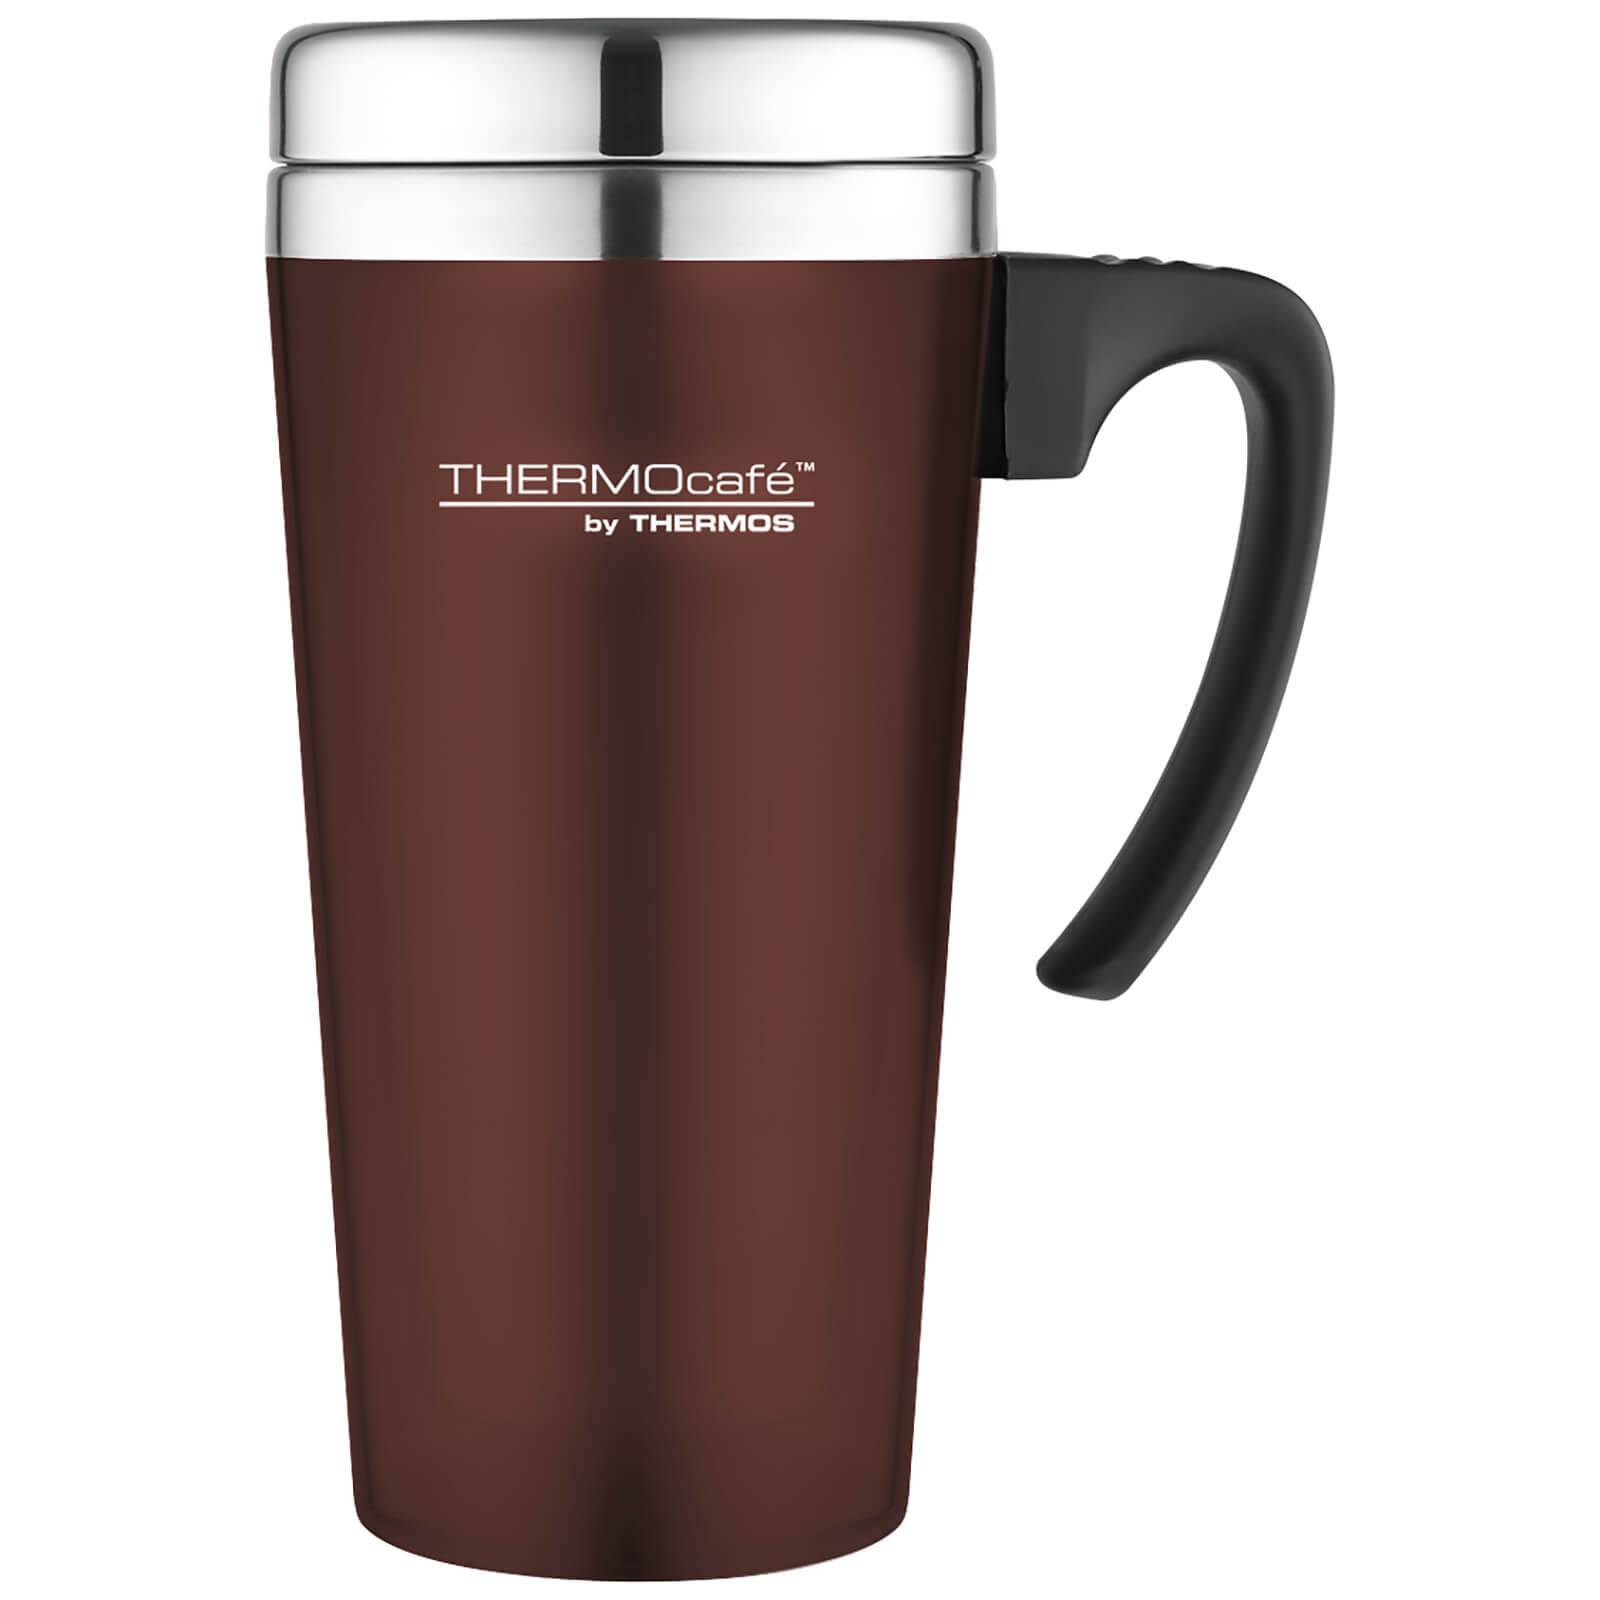 Thermos ThermoCafe Soft Touch Travel Mug - Paprika 420ml